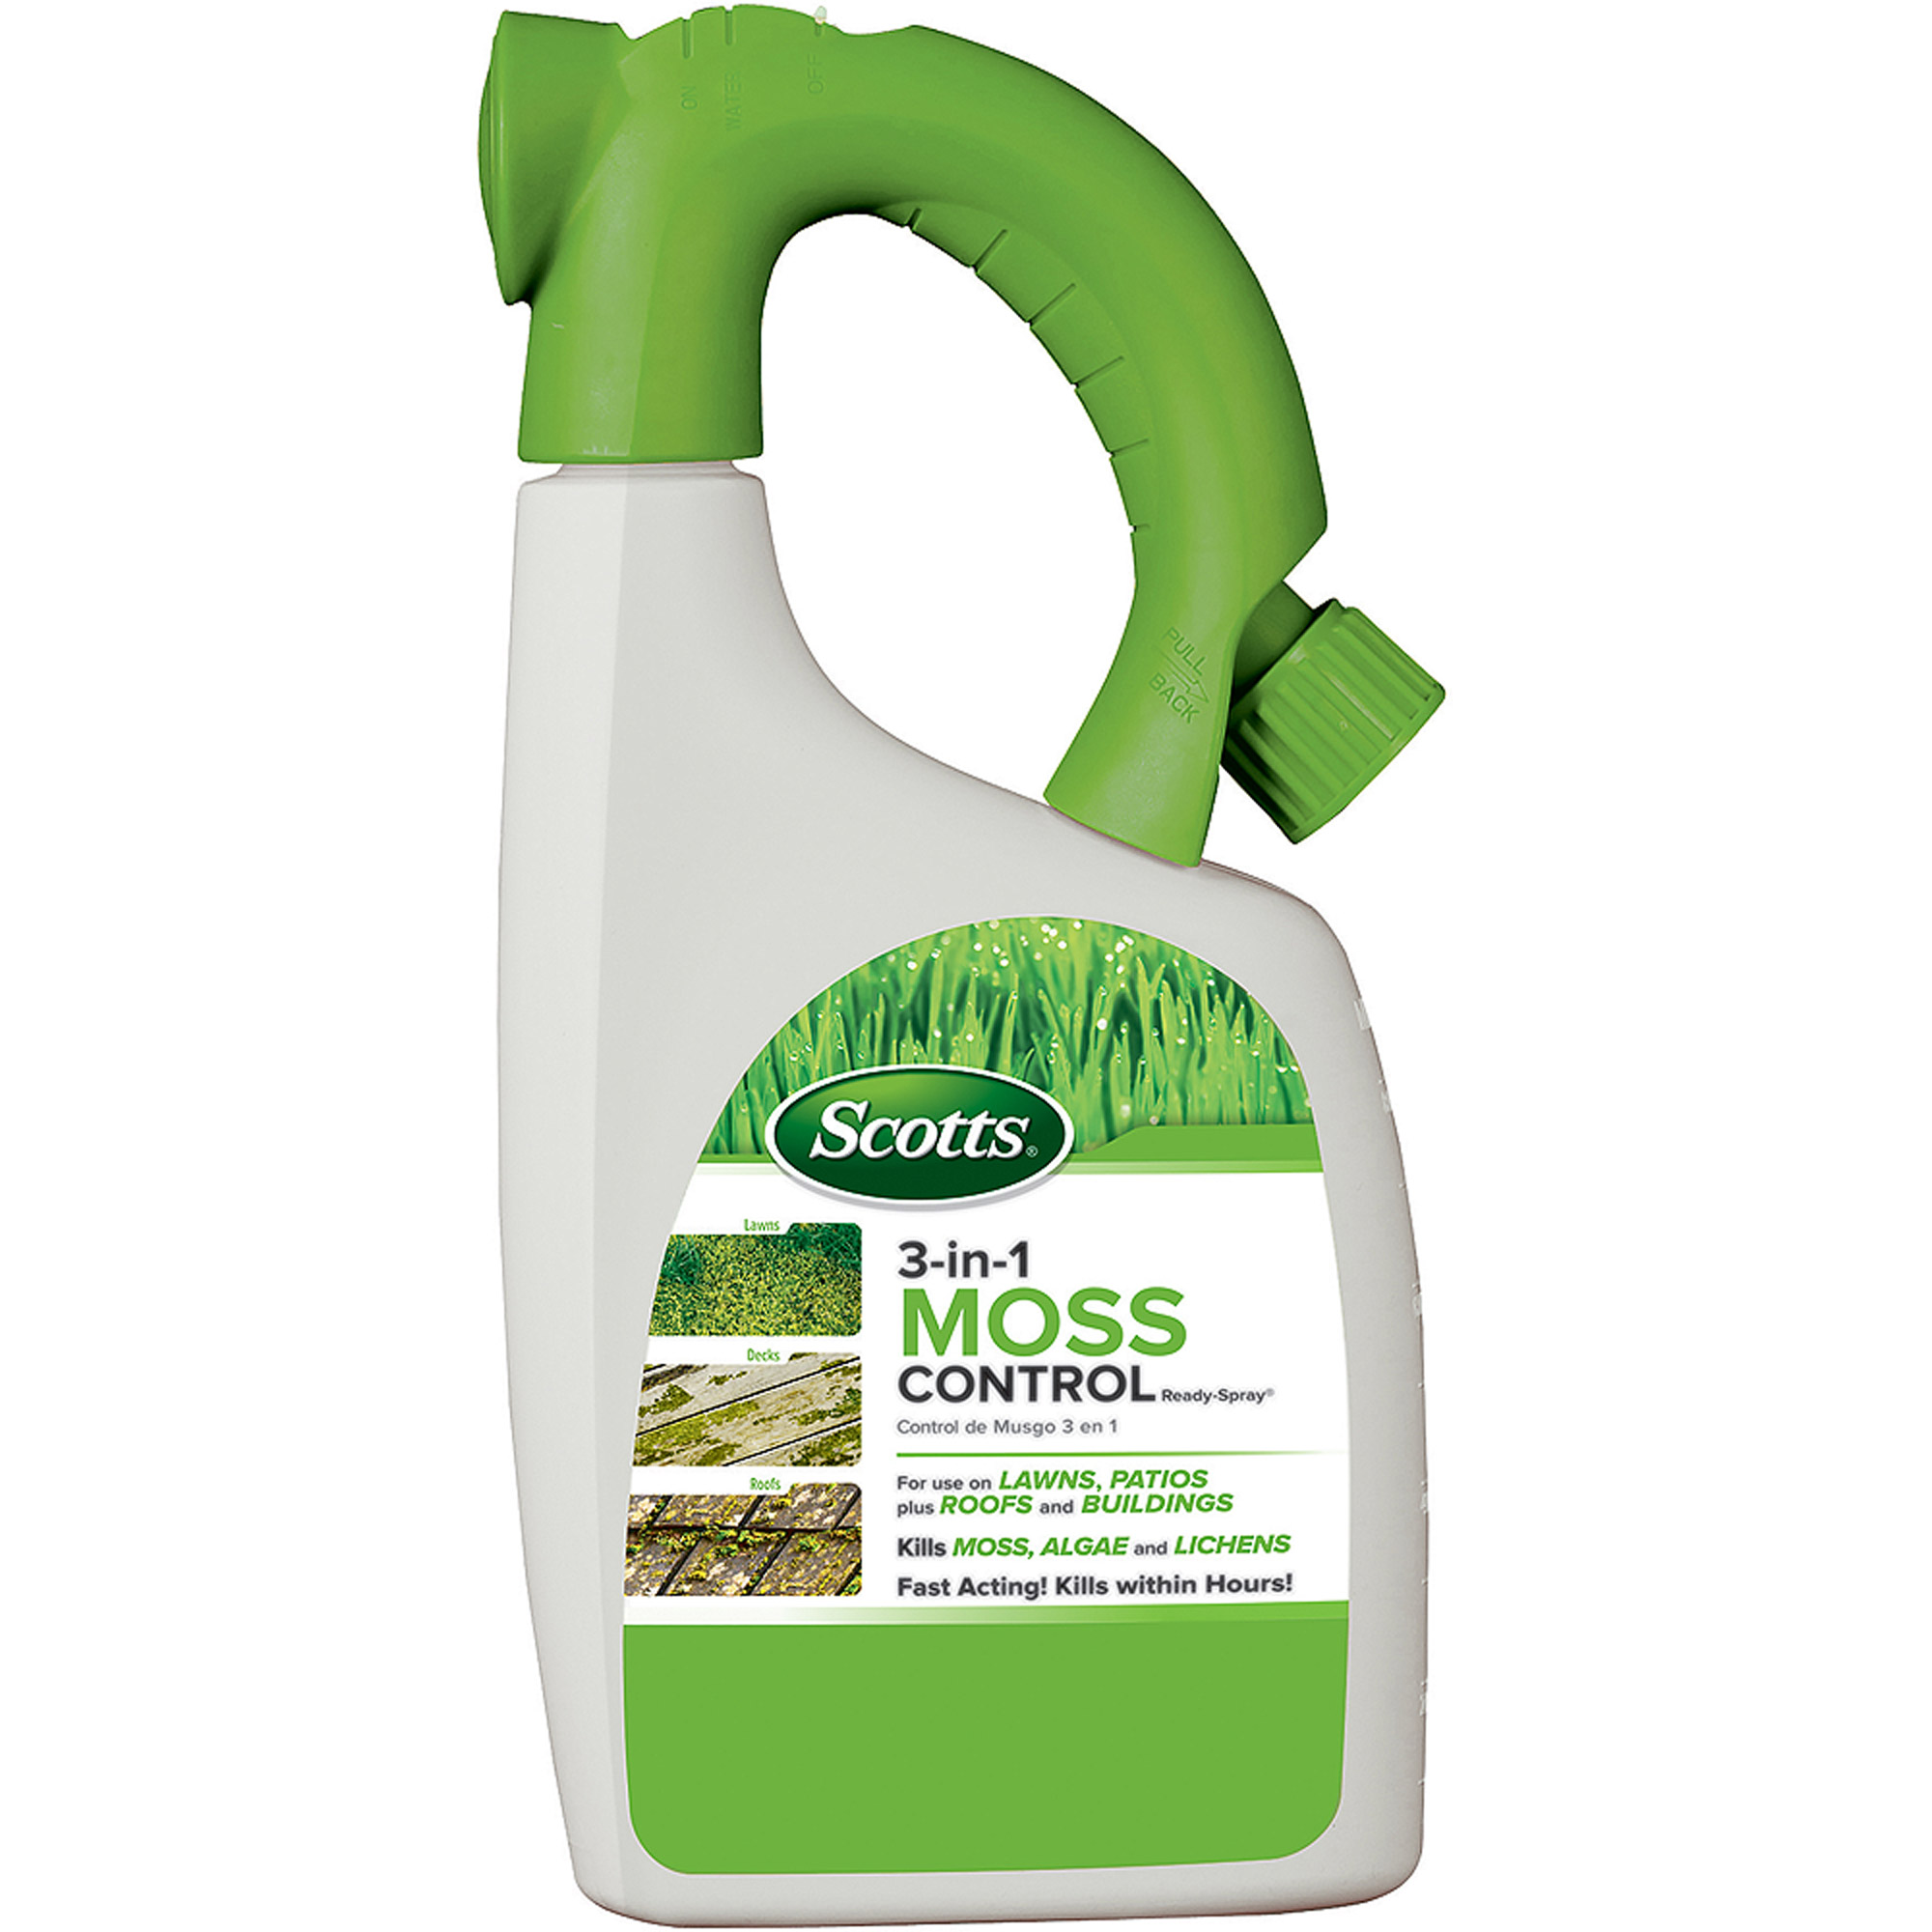 Scotts 3-in-1 Moss Control Ready-Spray 32 fl oz